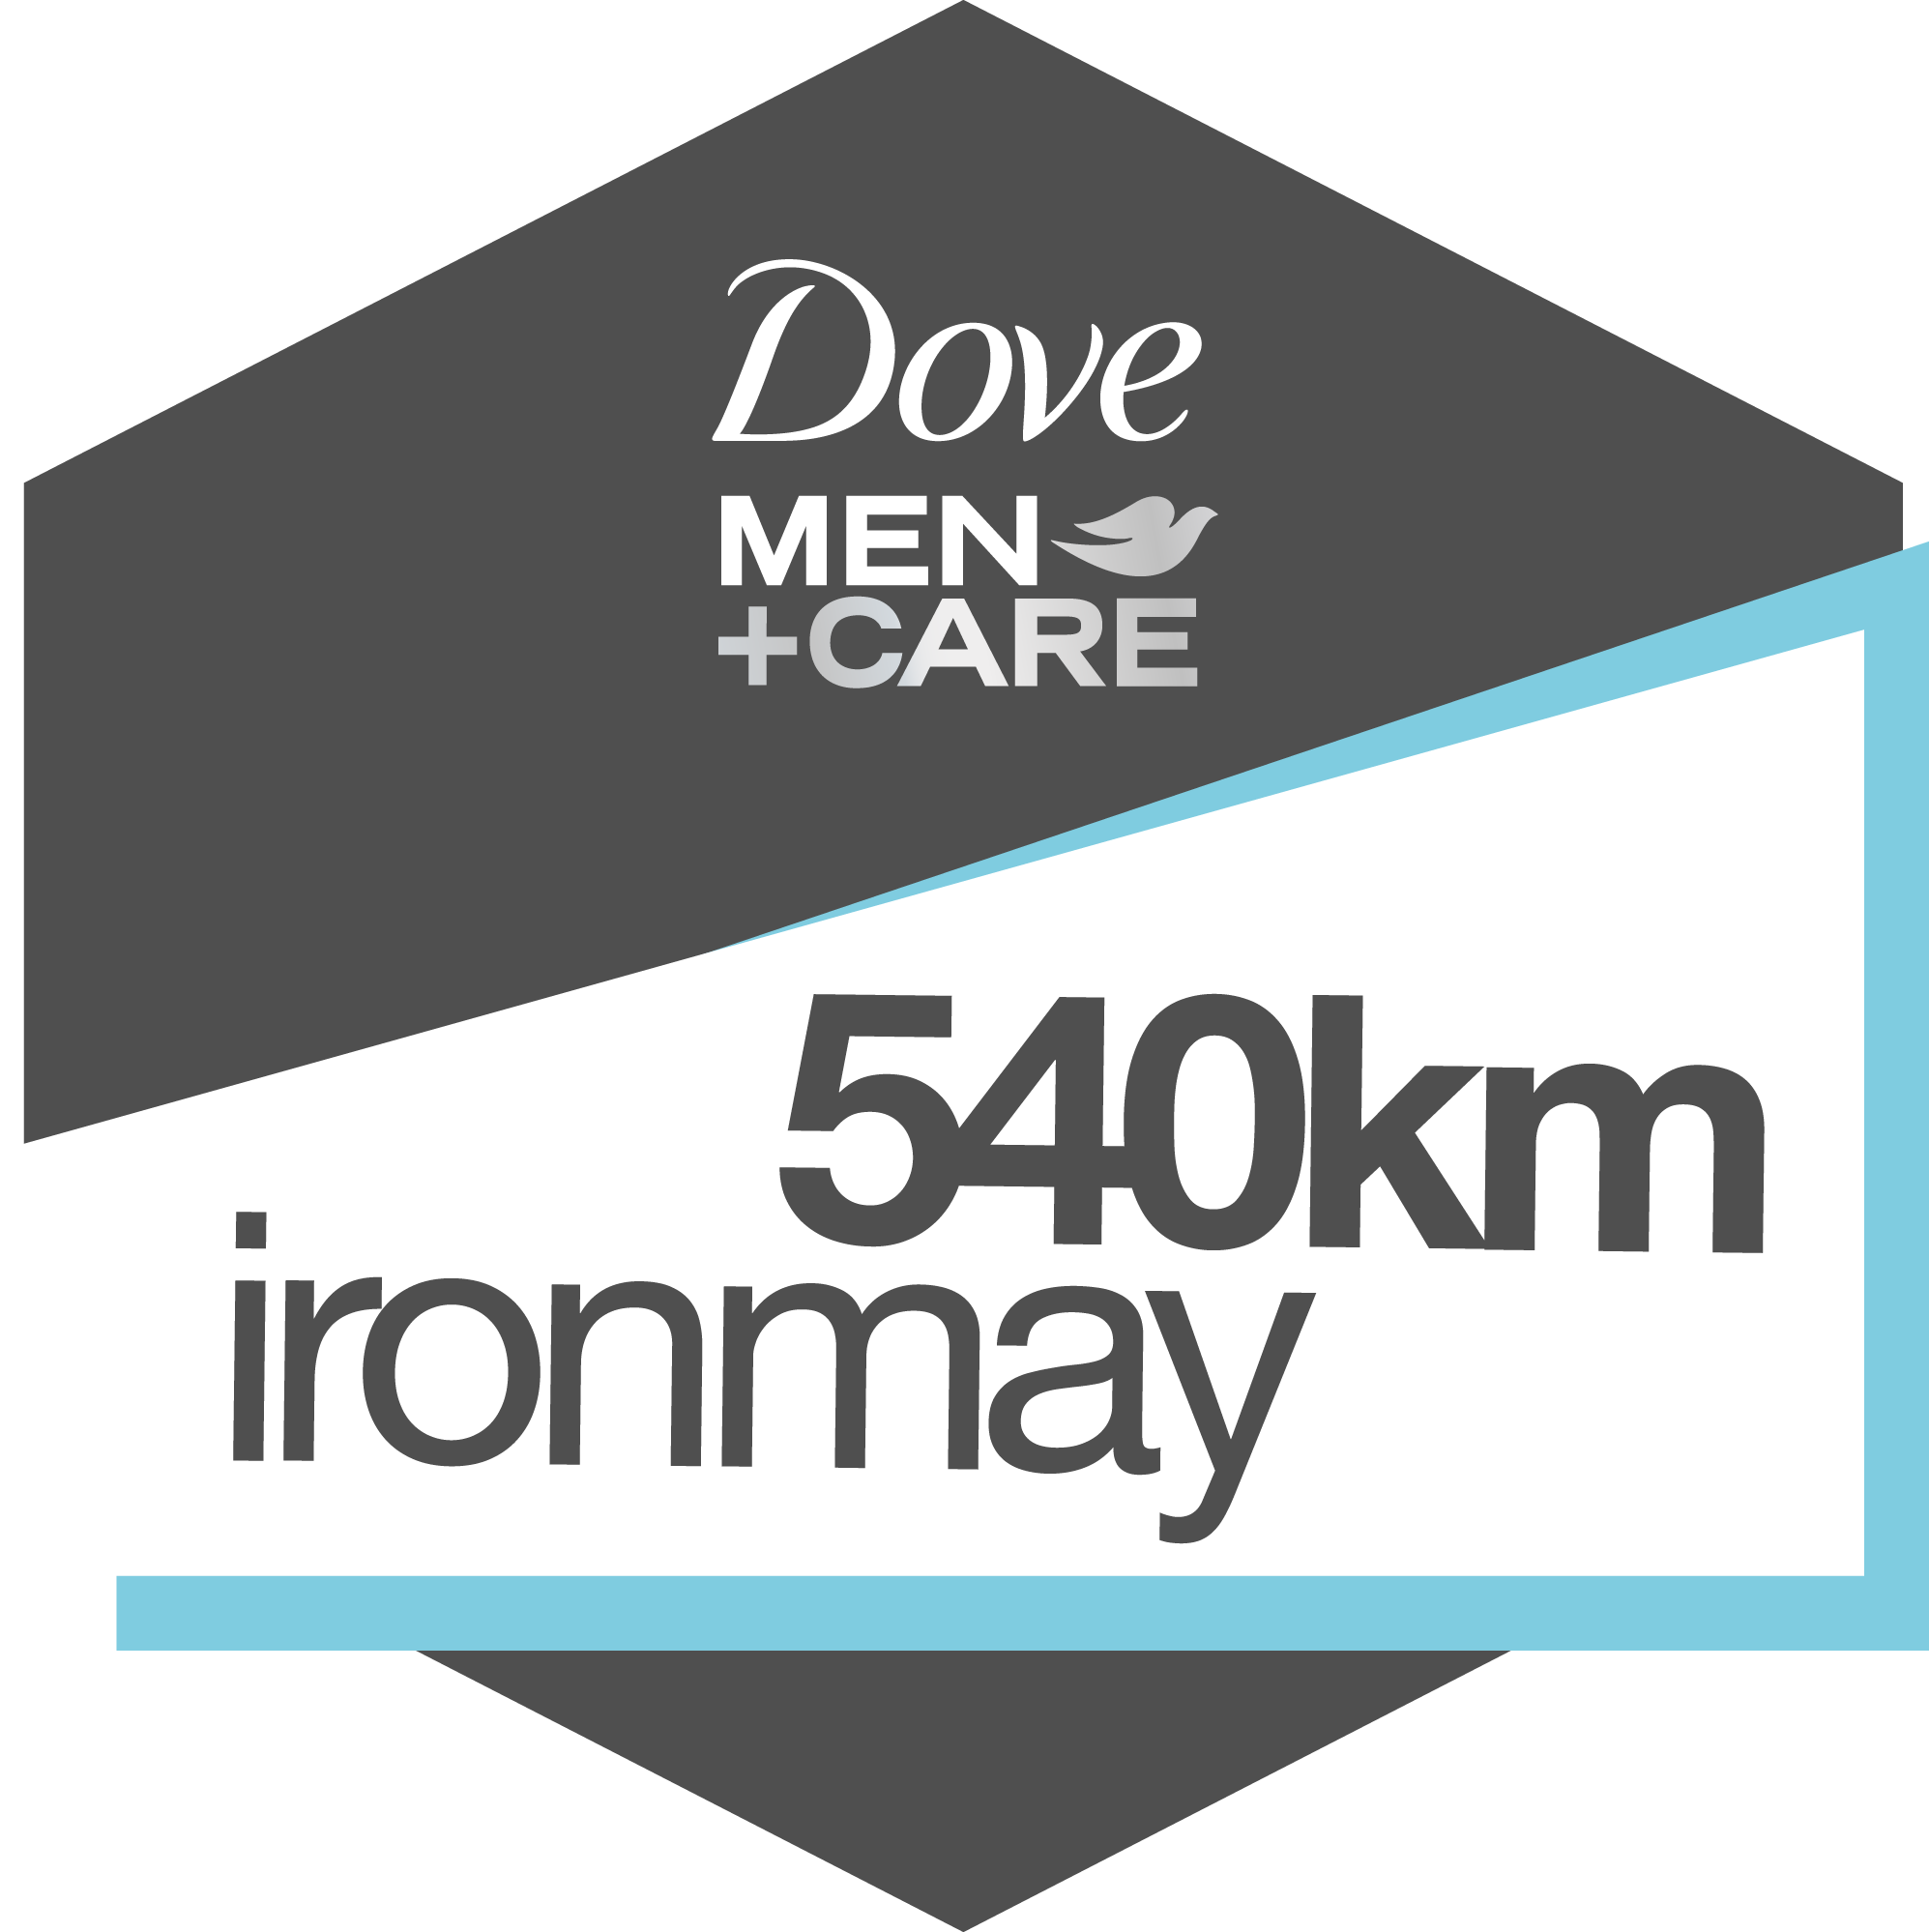 Dove Men+Care IronMay.